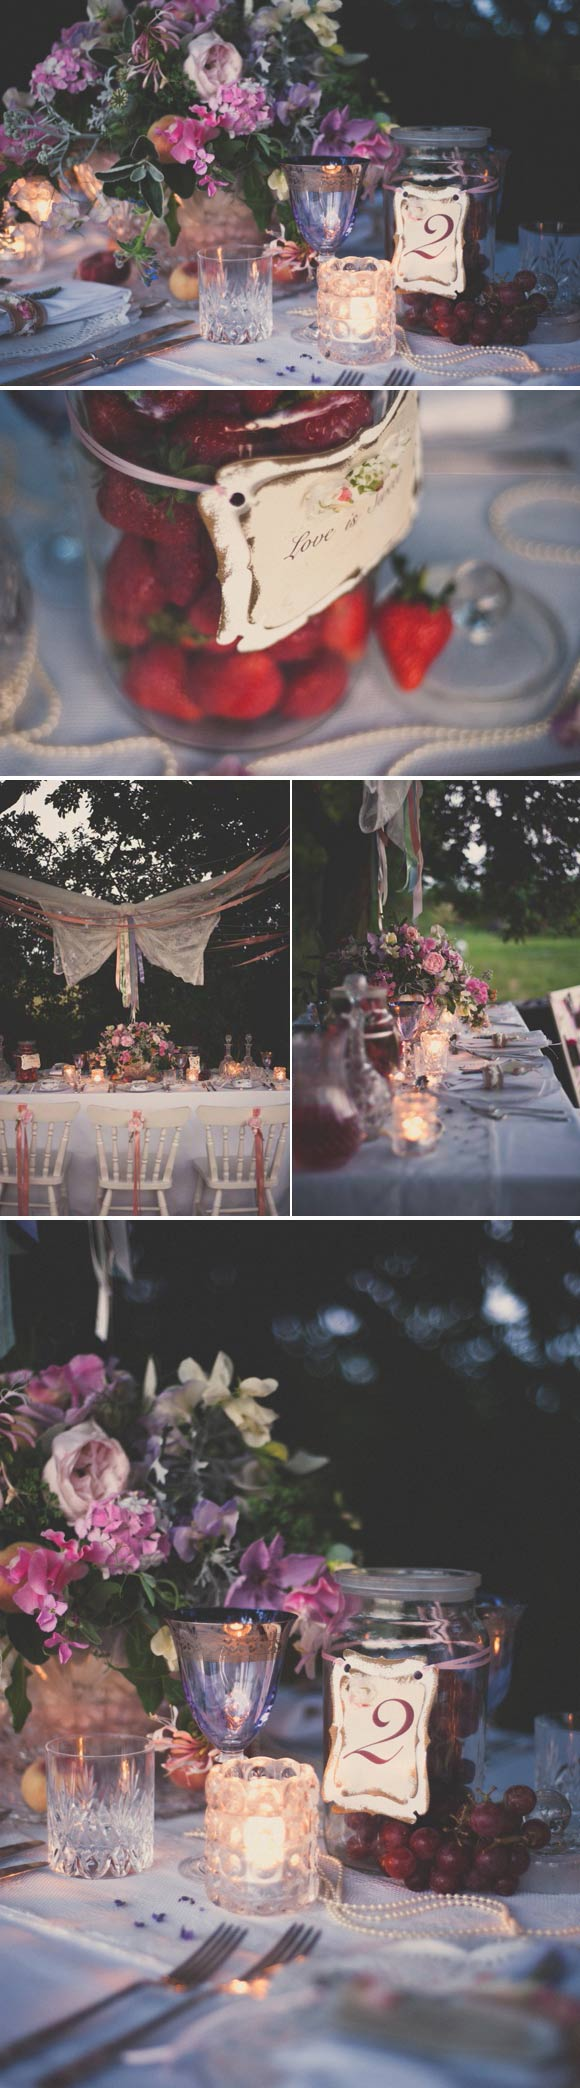 Bohemian Style Shoot Garden - Photos Laura Power